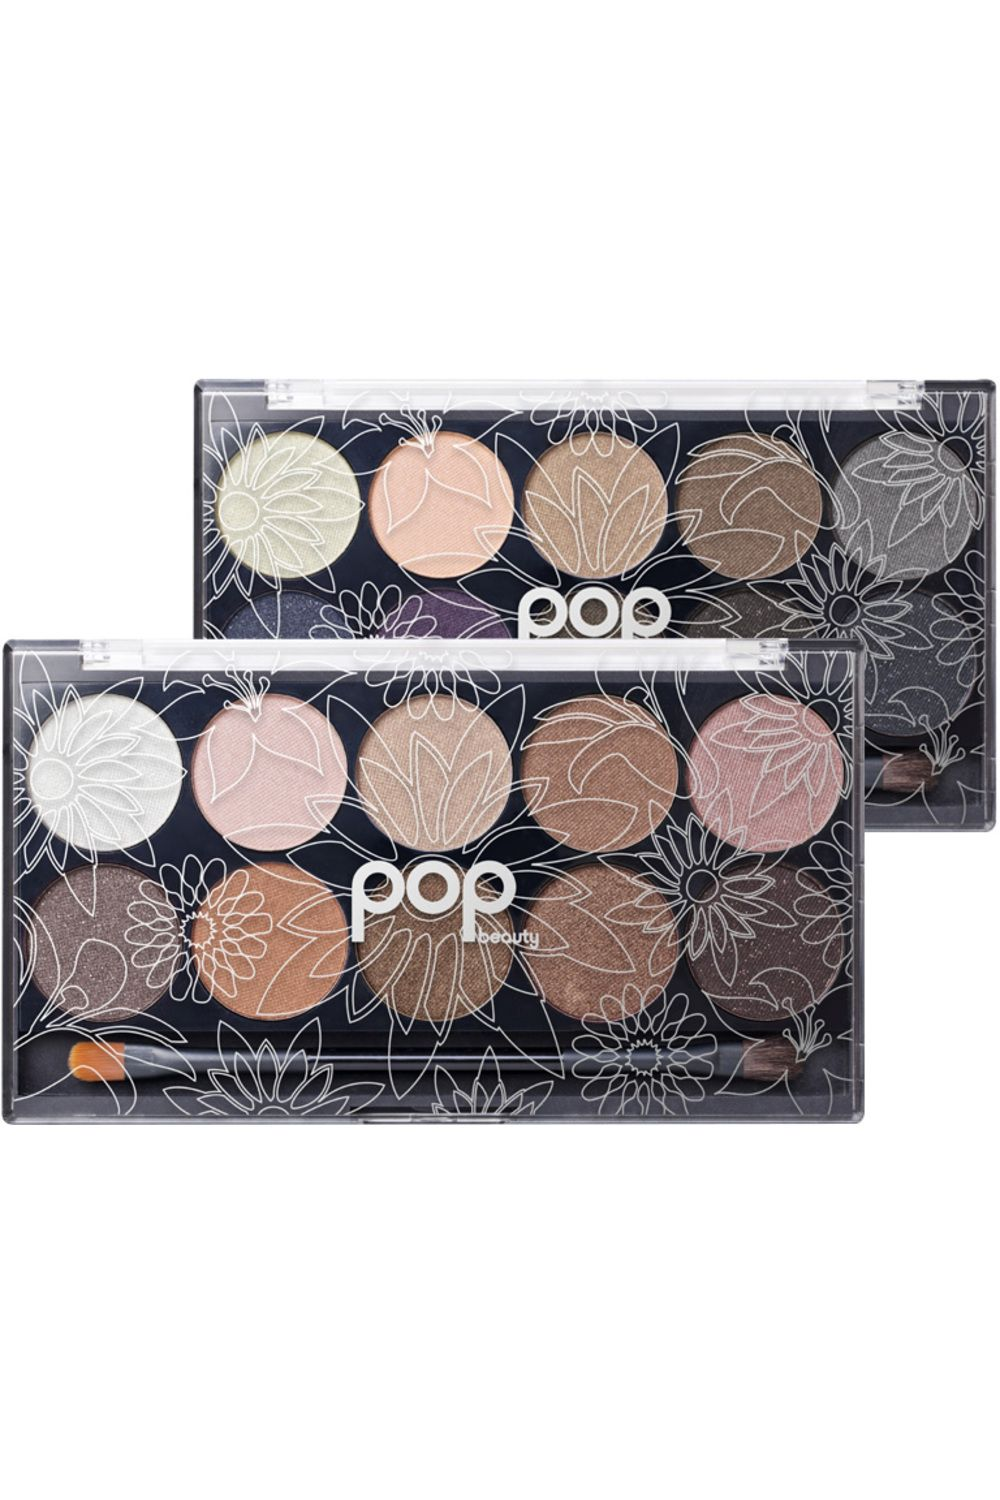 Blissim : Pop Beauty - Palette Bright Up your Life - Palette Bright Up your Life